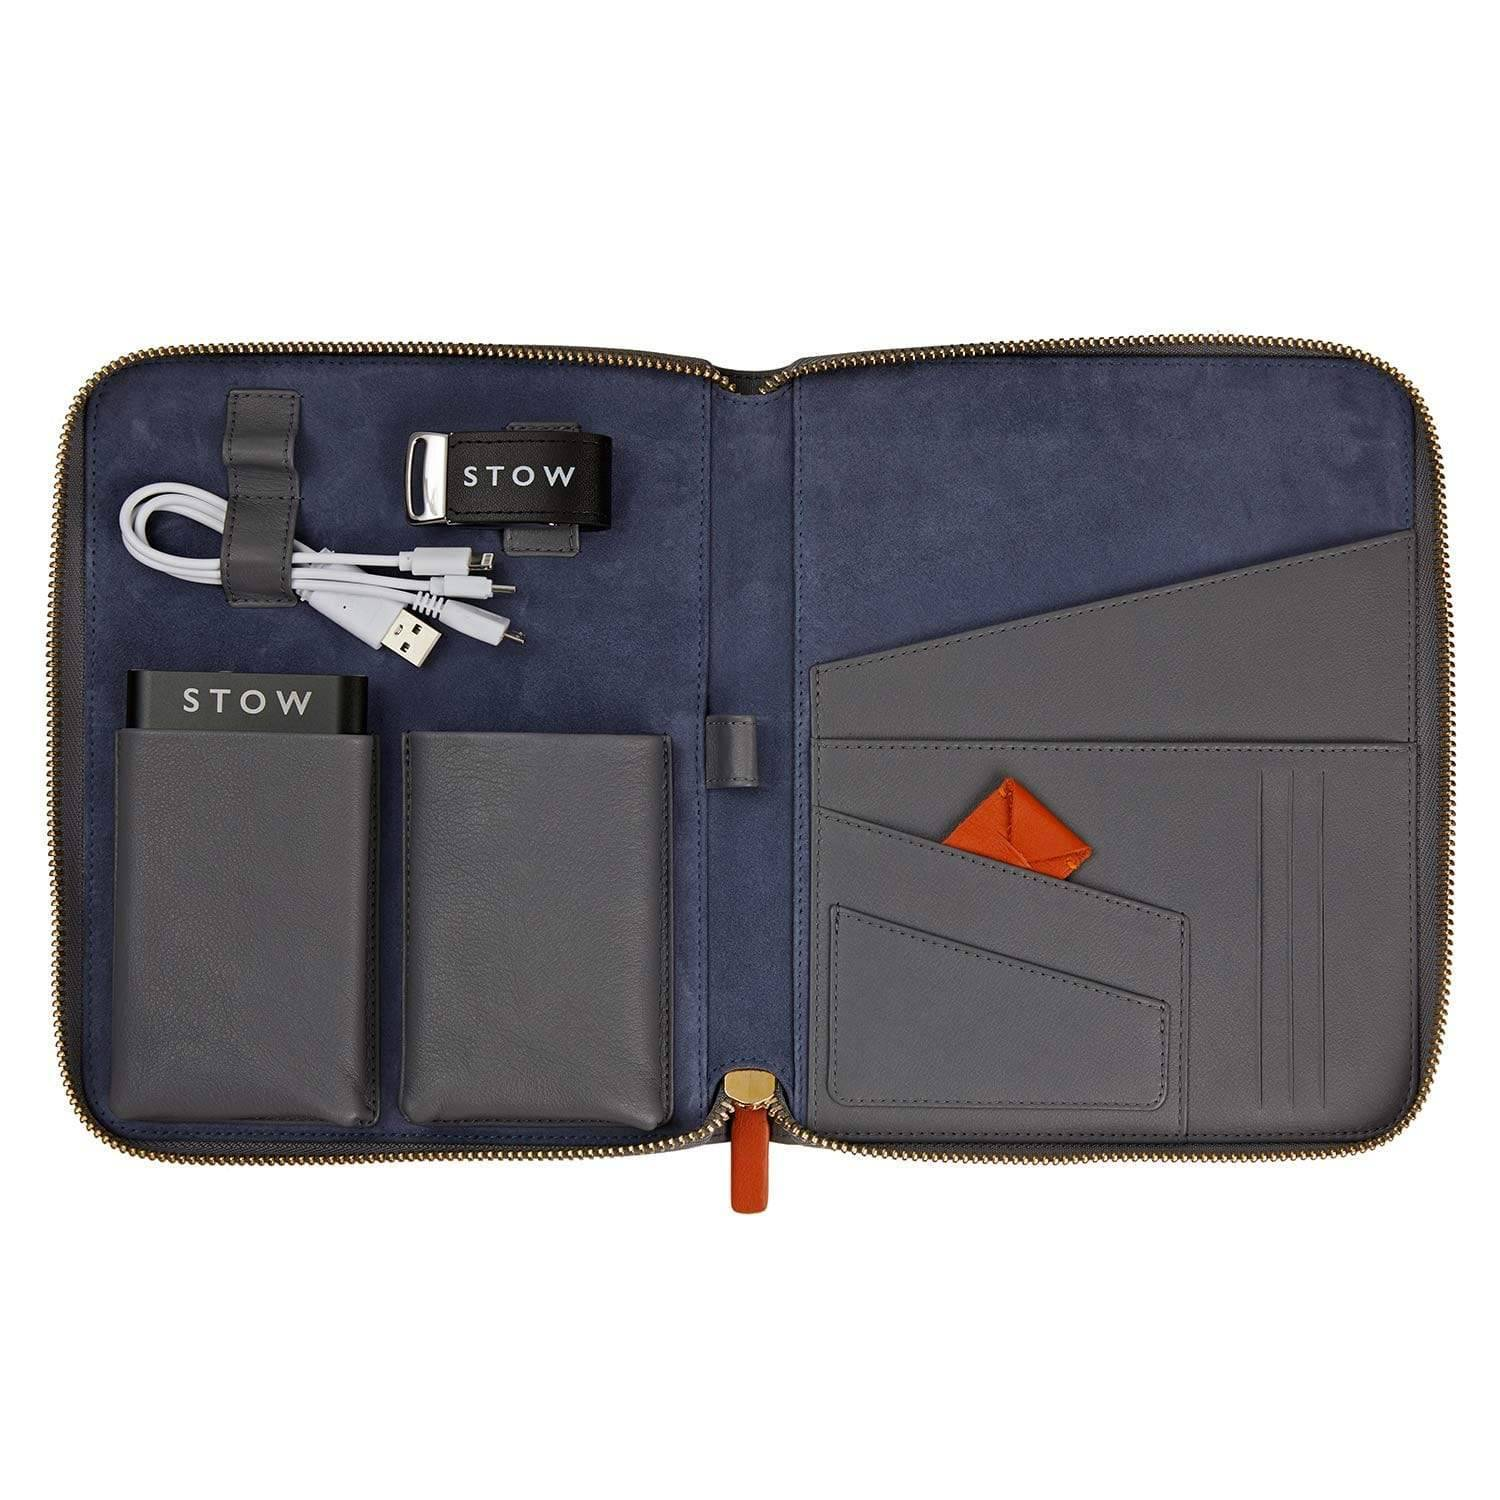 STOW First Class Leather Tech Case - Personalized